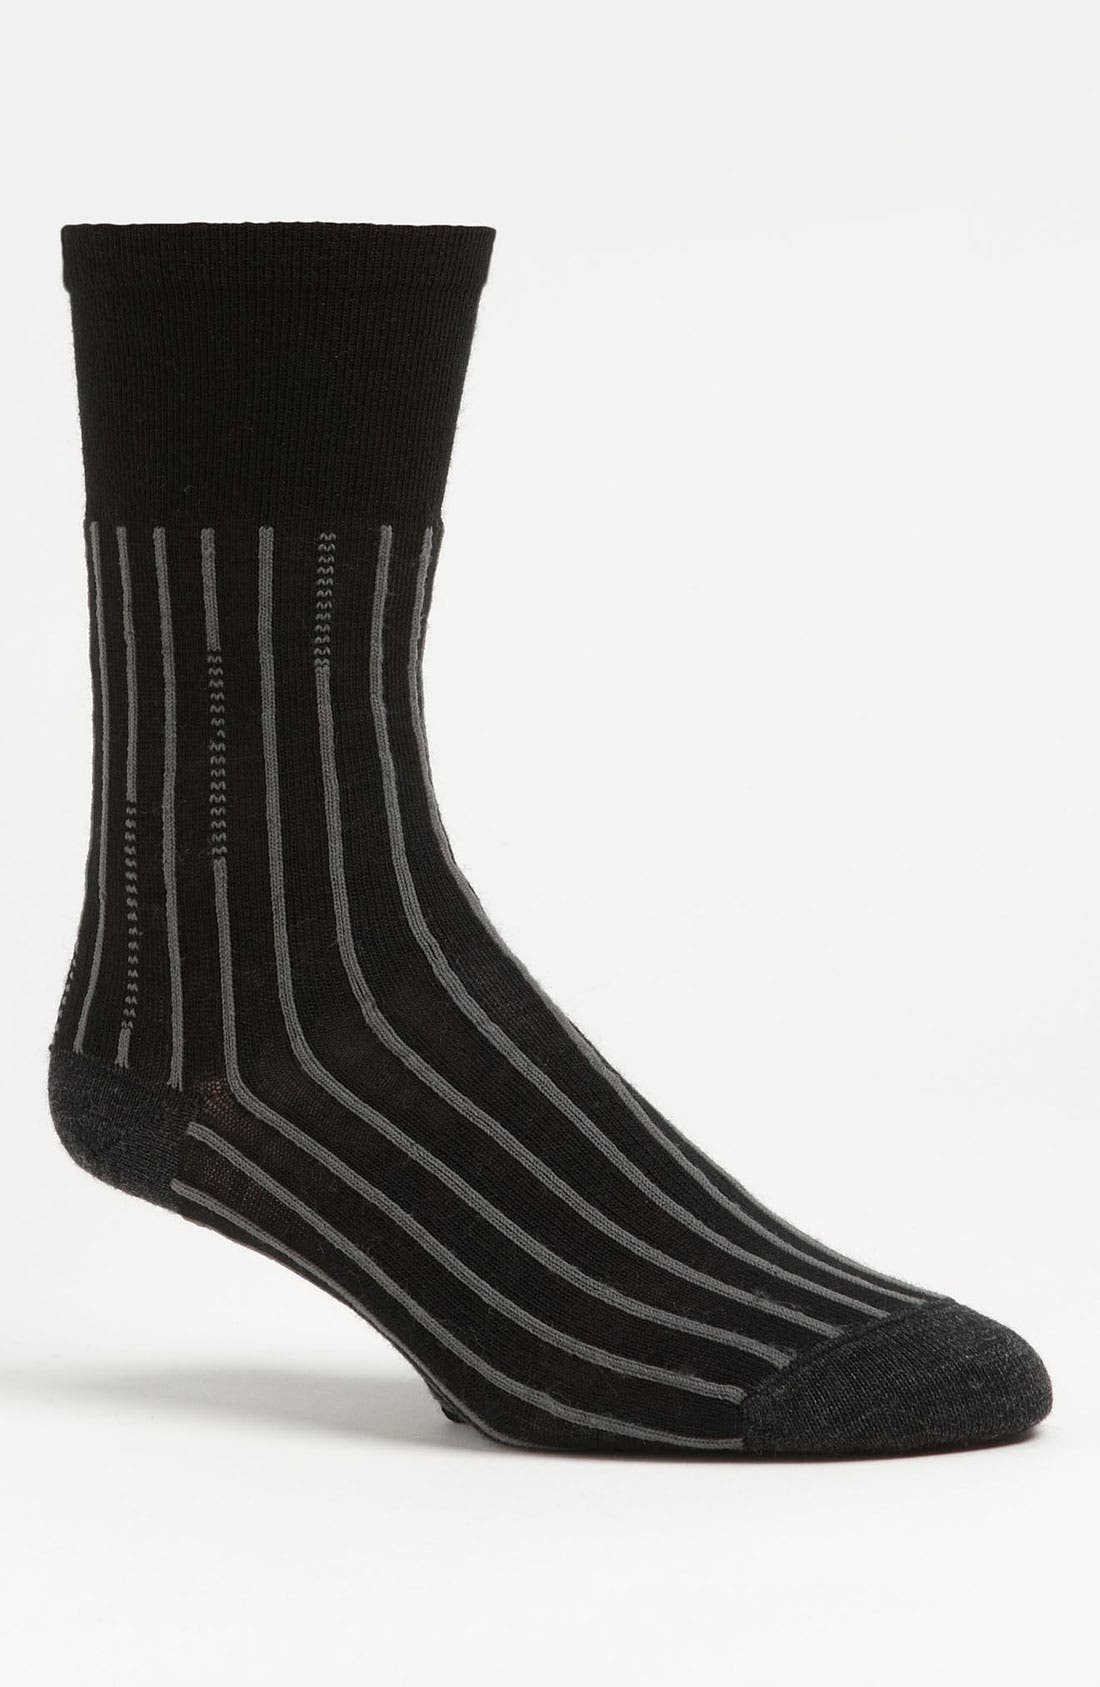 Alternate Image 1 Selected - Smartwool Broken Pinstripe Socks